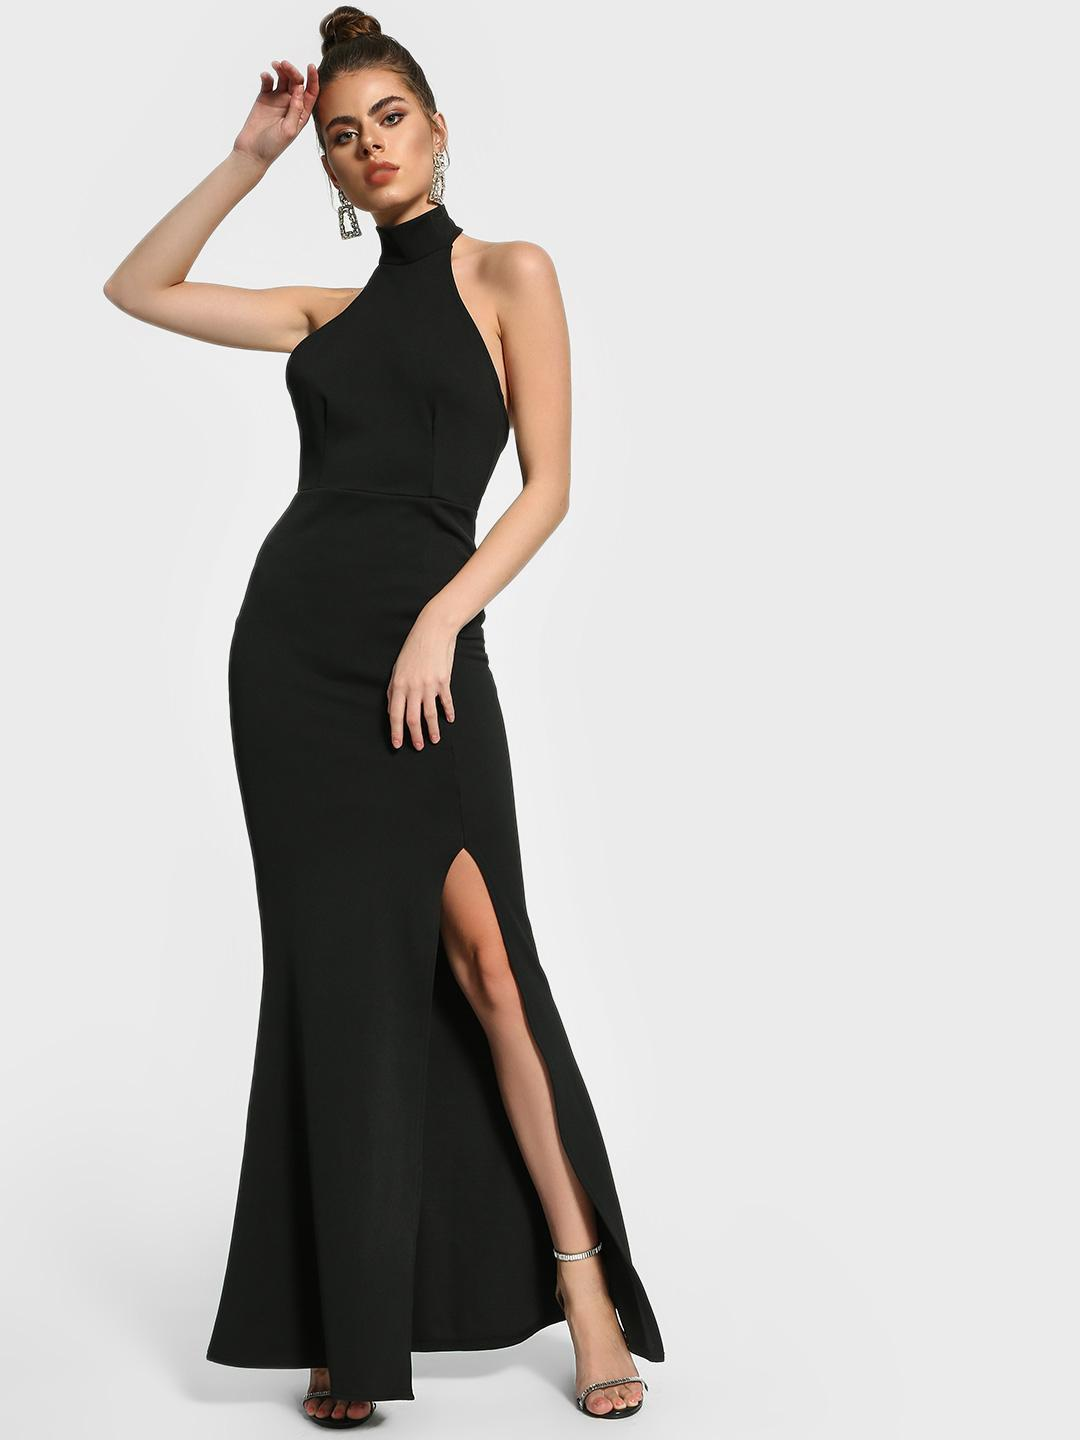 Missguided Black Halter Neck Slit Maxi Dress 1